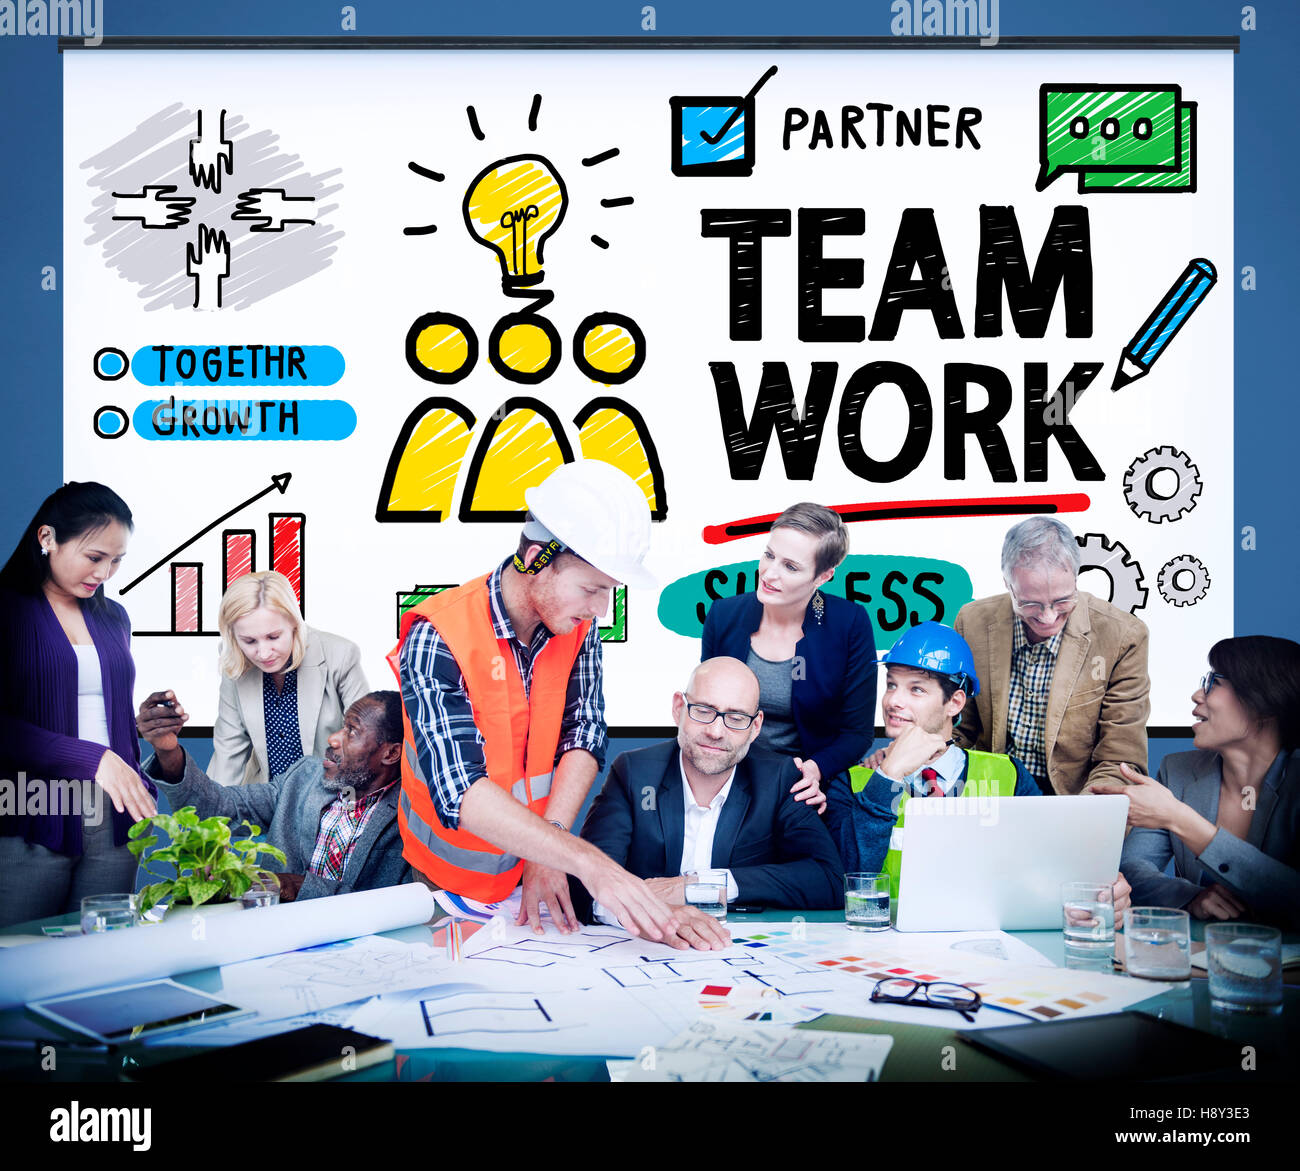 Team Teamwork Group Collaboration Organization Concept Stock Photo